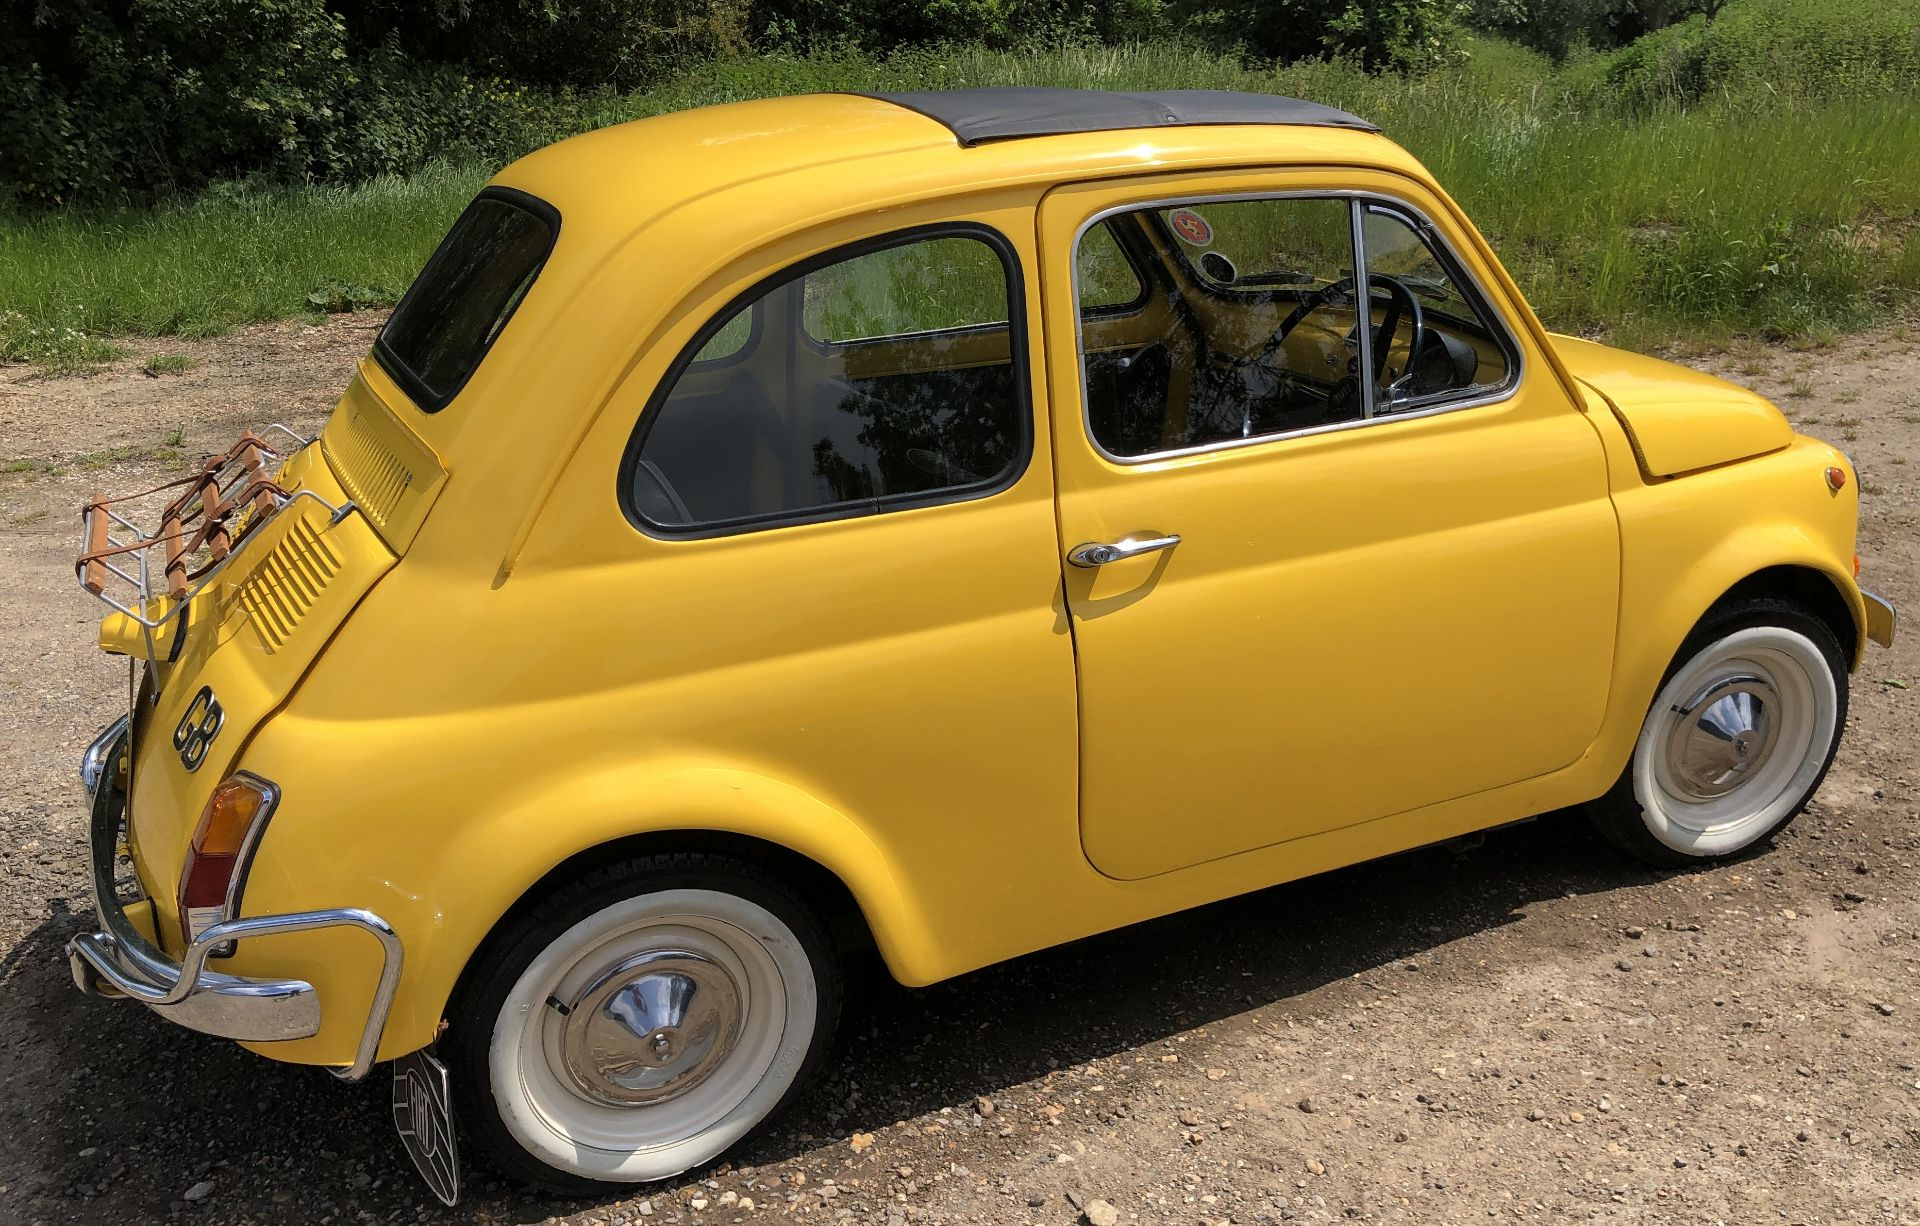 1972 Fiat 500 Saloon, Registration E-50-Man (IOM, Formally Registered as TGF 249L), First Registered - Image 3 of 34